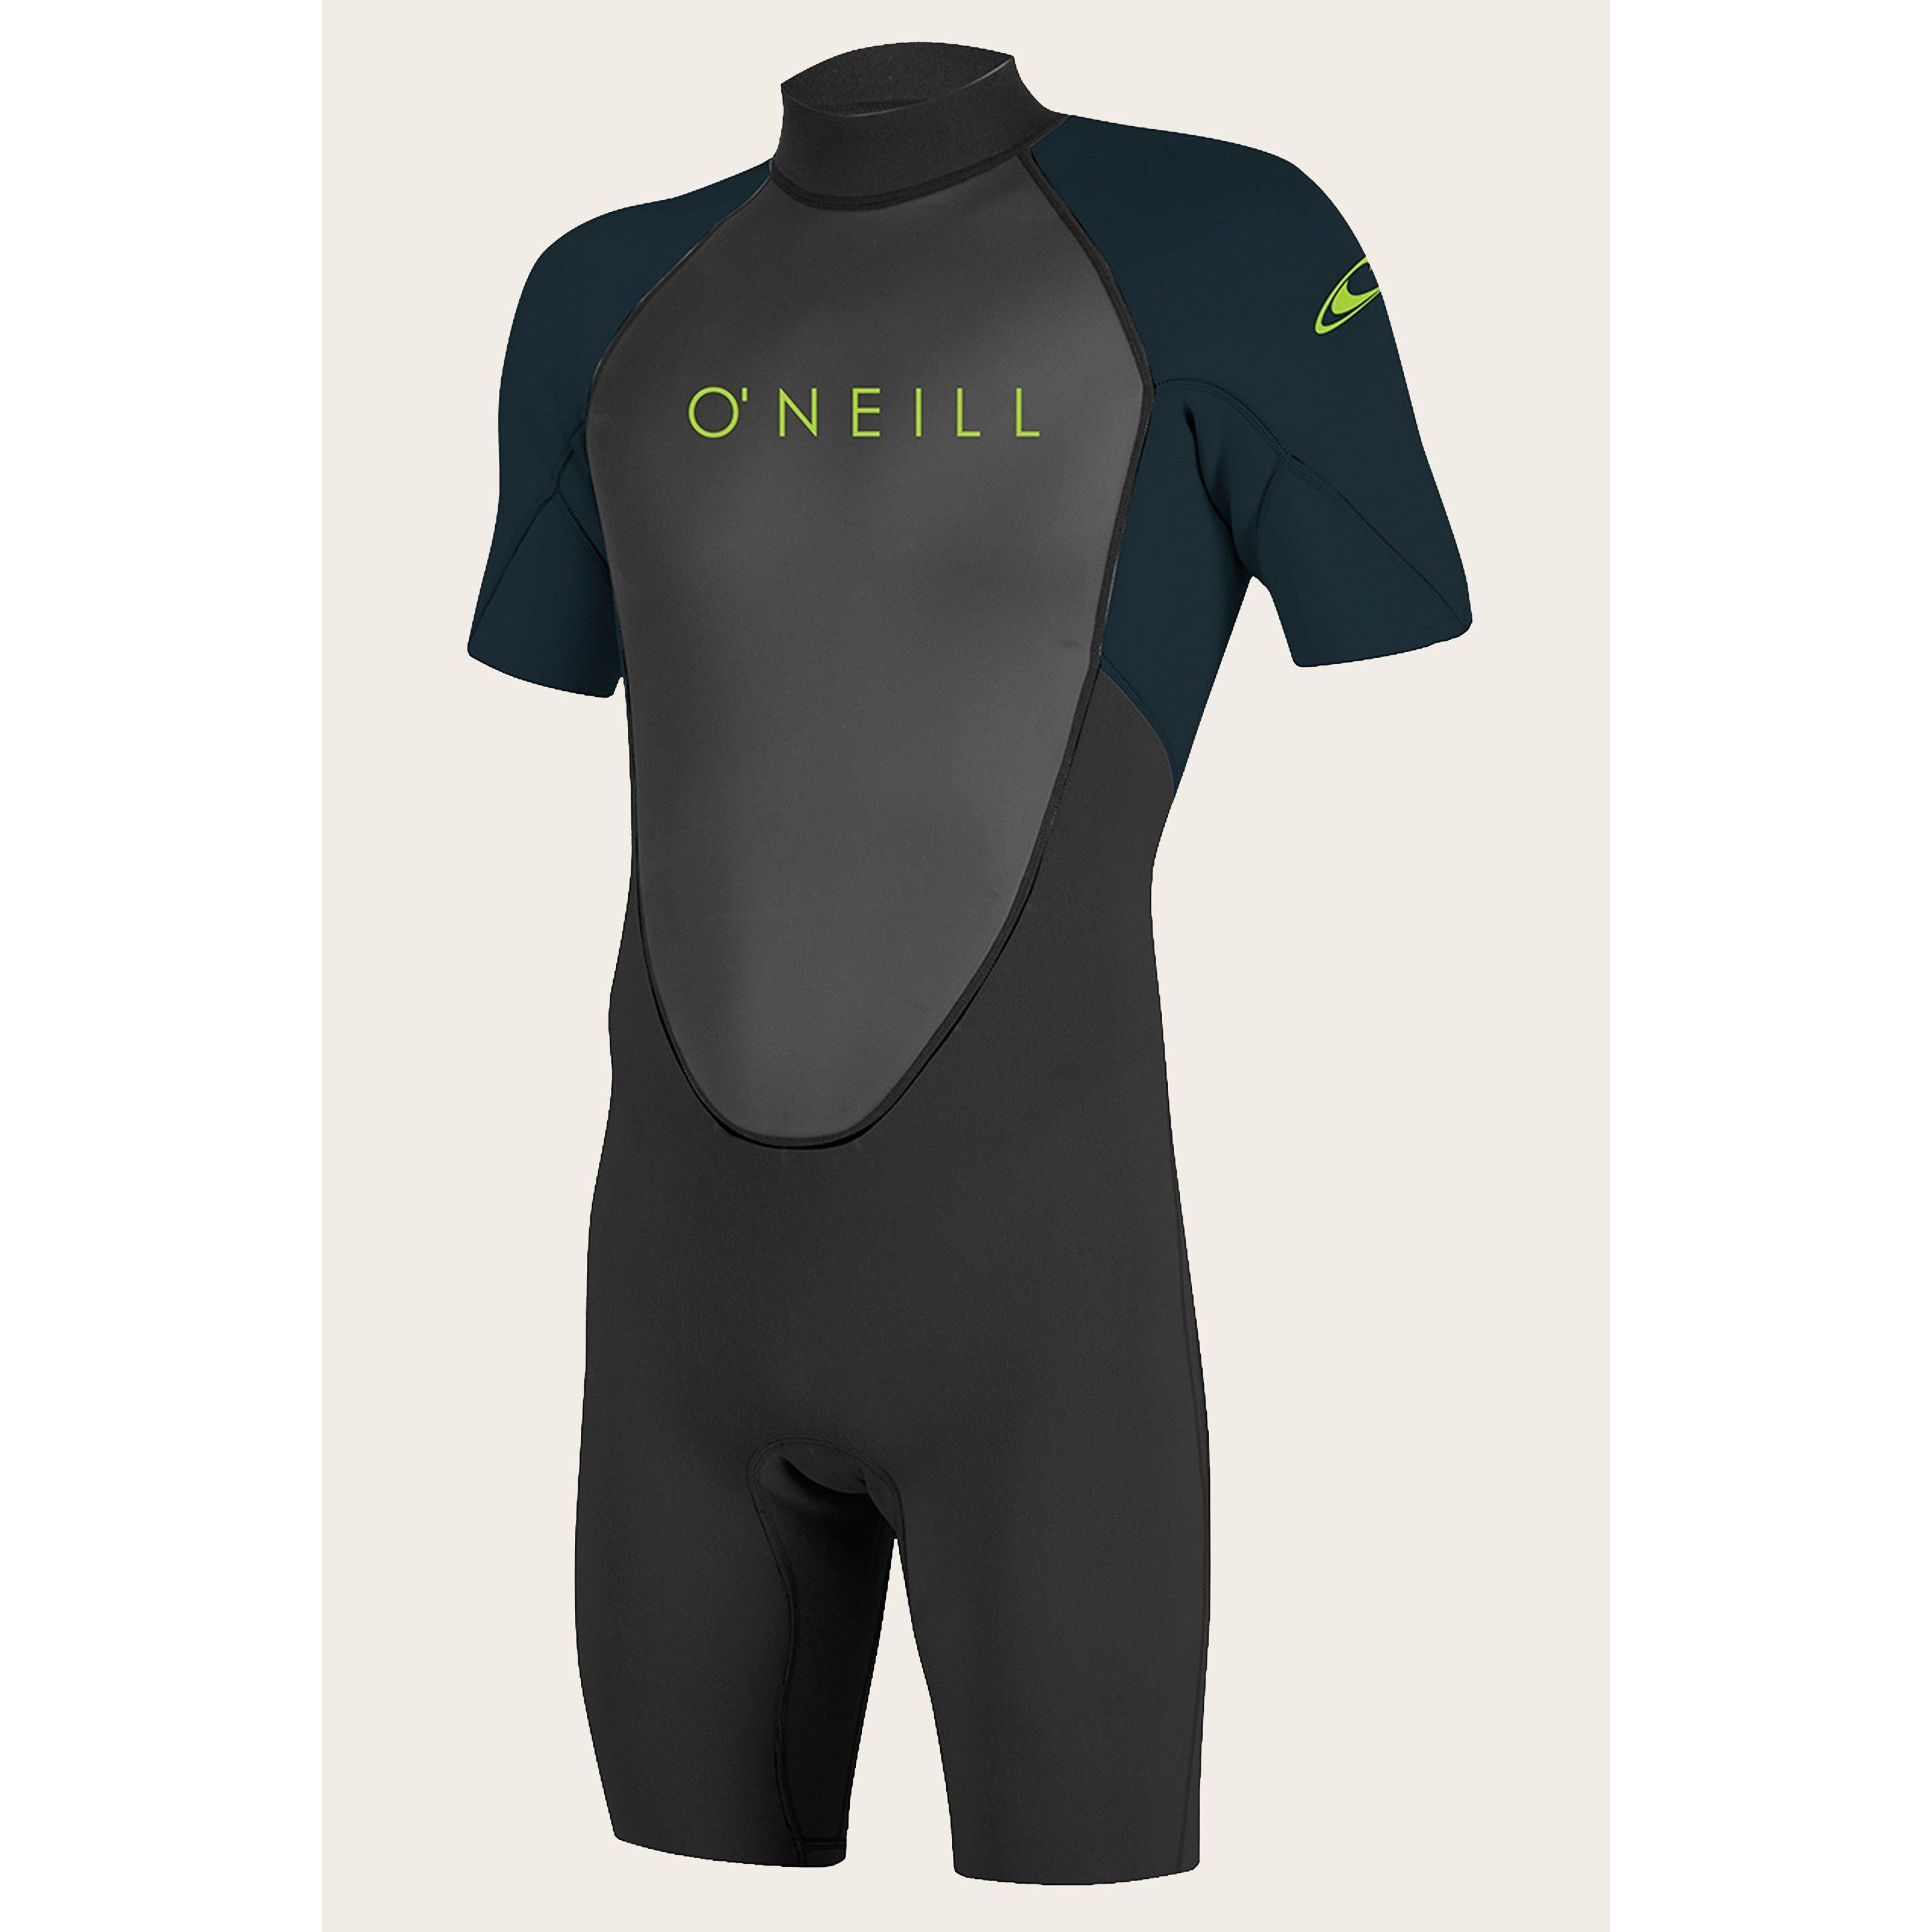 O'NEILL YOUTH REACTOR II 2MM BACK ZIP SHORT SLEEVE SPRING WETSUIT-Wetsuits-Big Winds